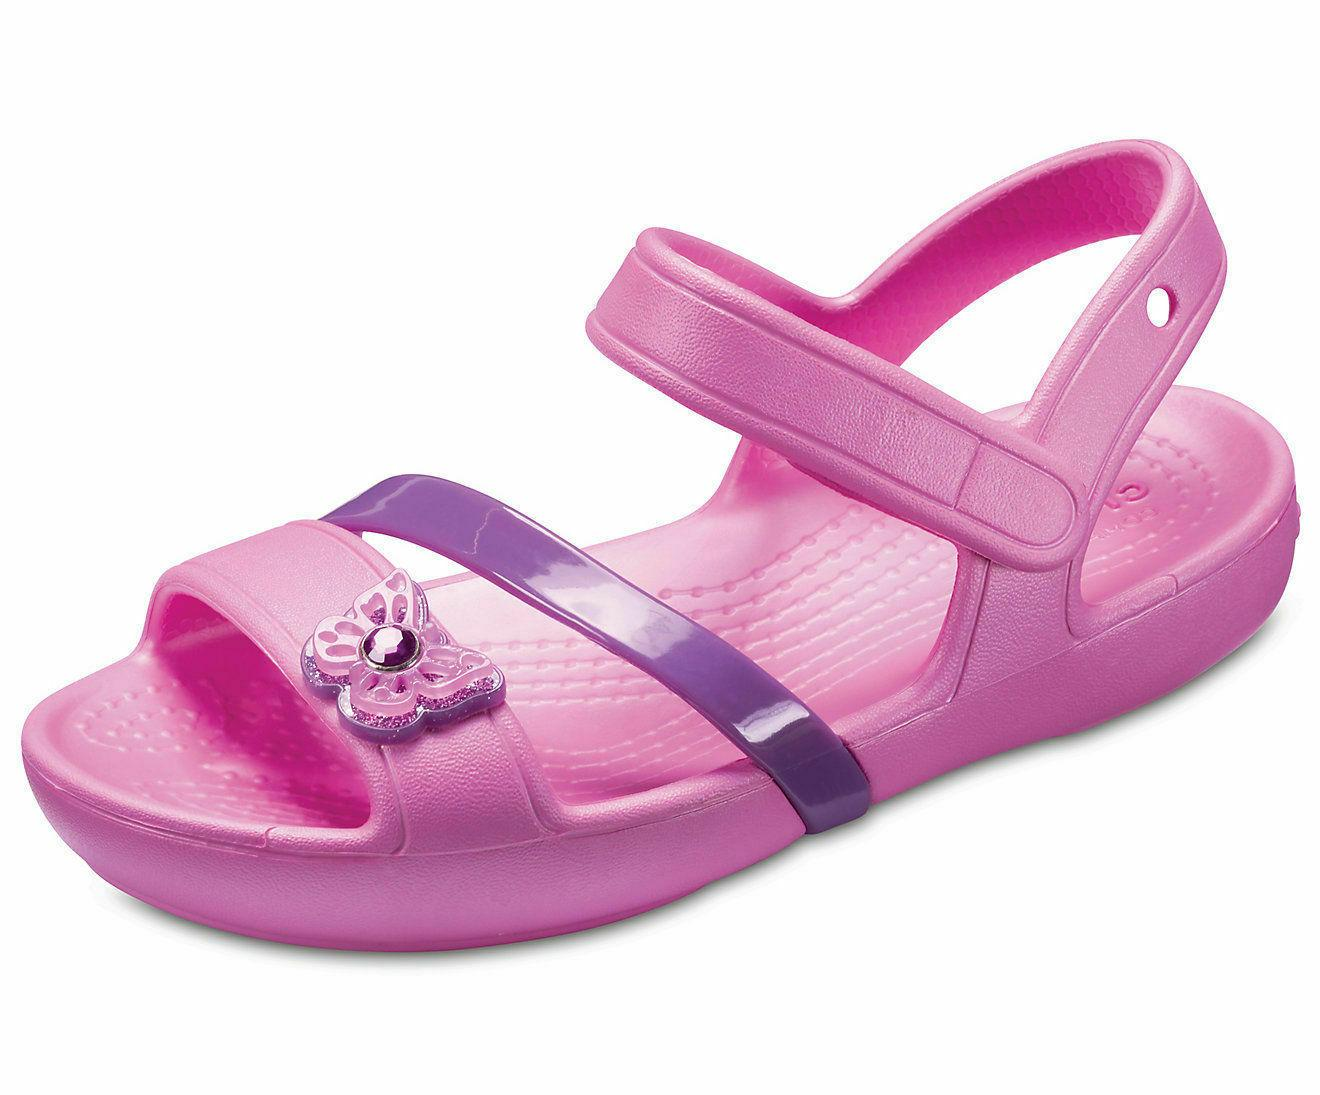 new toddler girls lina relaxed fit sandals